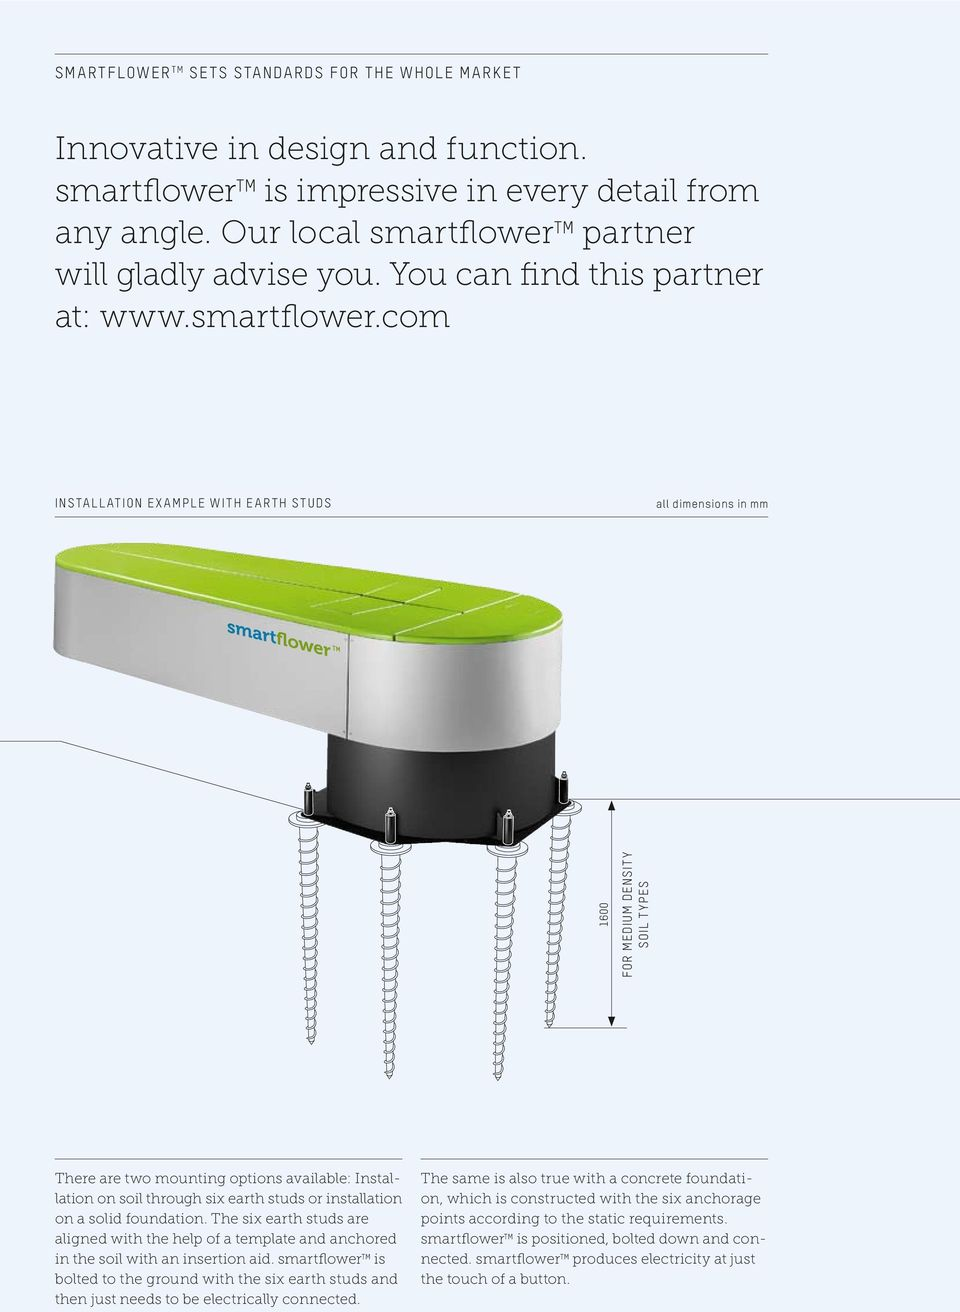 TM partner will gladly advise you. You can find this partner at: www.smartflower.